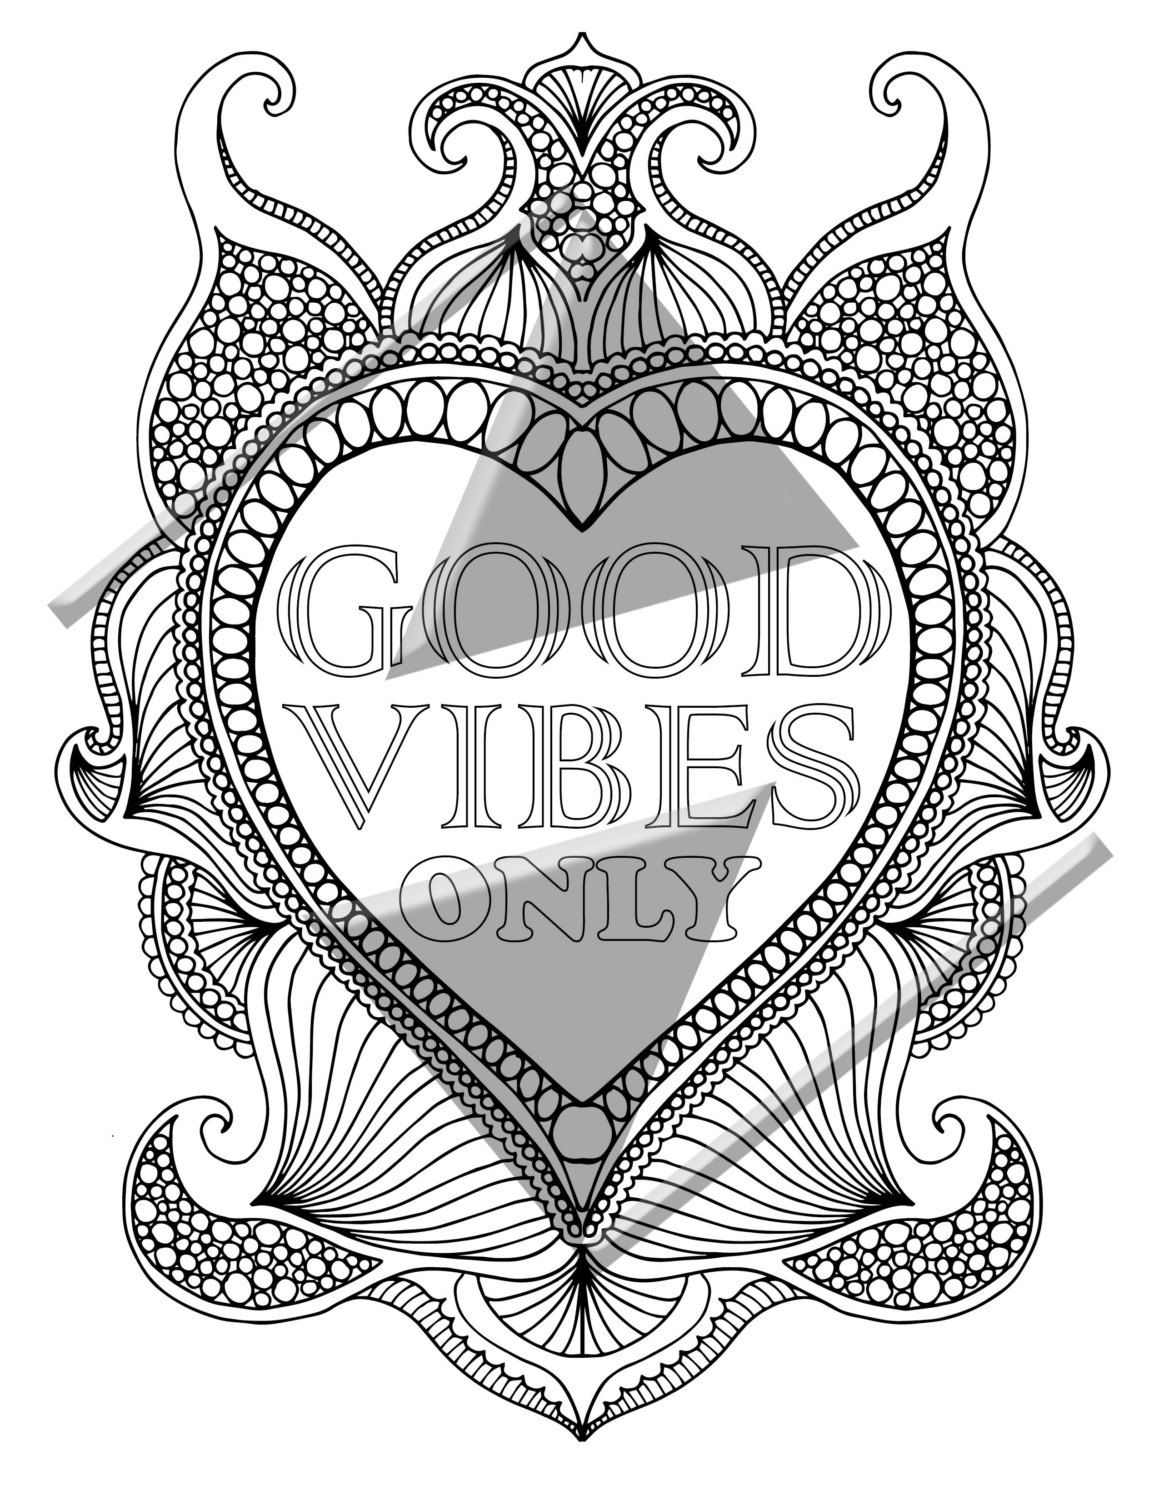 Coloring pages with quotes - Adult Coloring Pages Coloring Pages Quote Coloring Pages Inspiring Quotes Printable Quotes Coloring Sheets Coloring For Adults